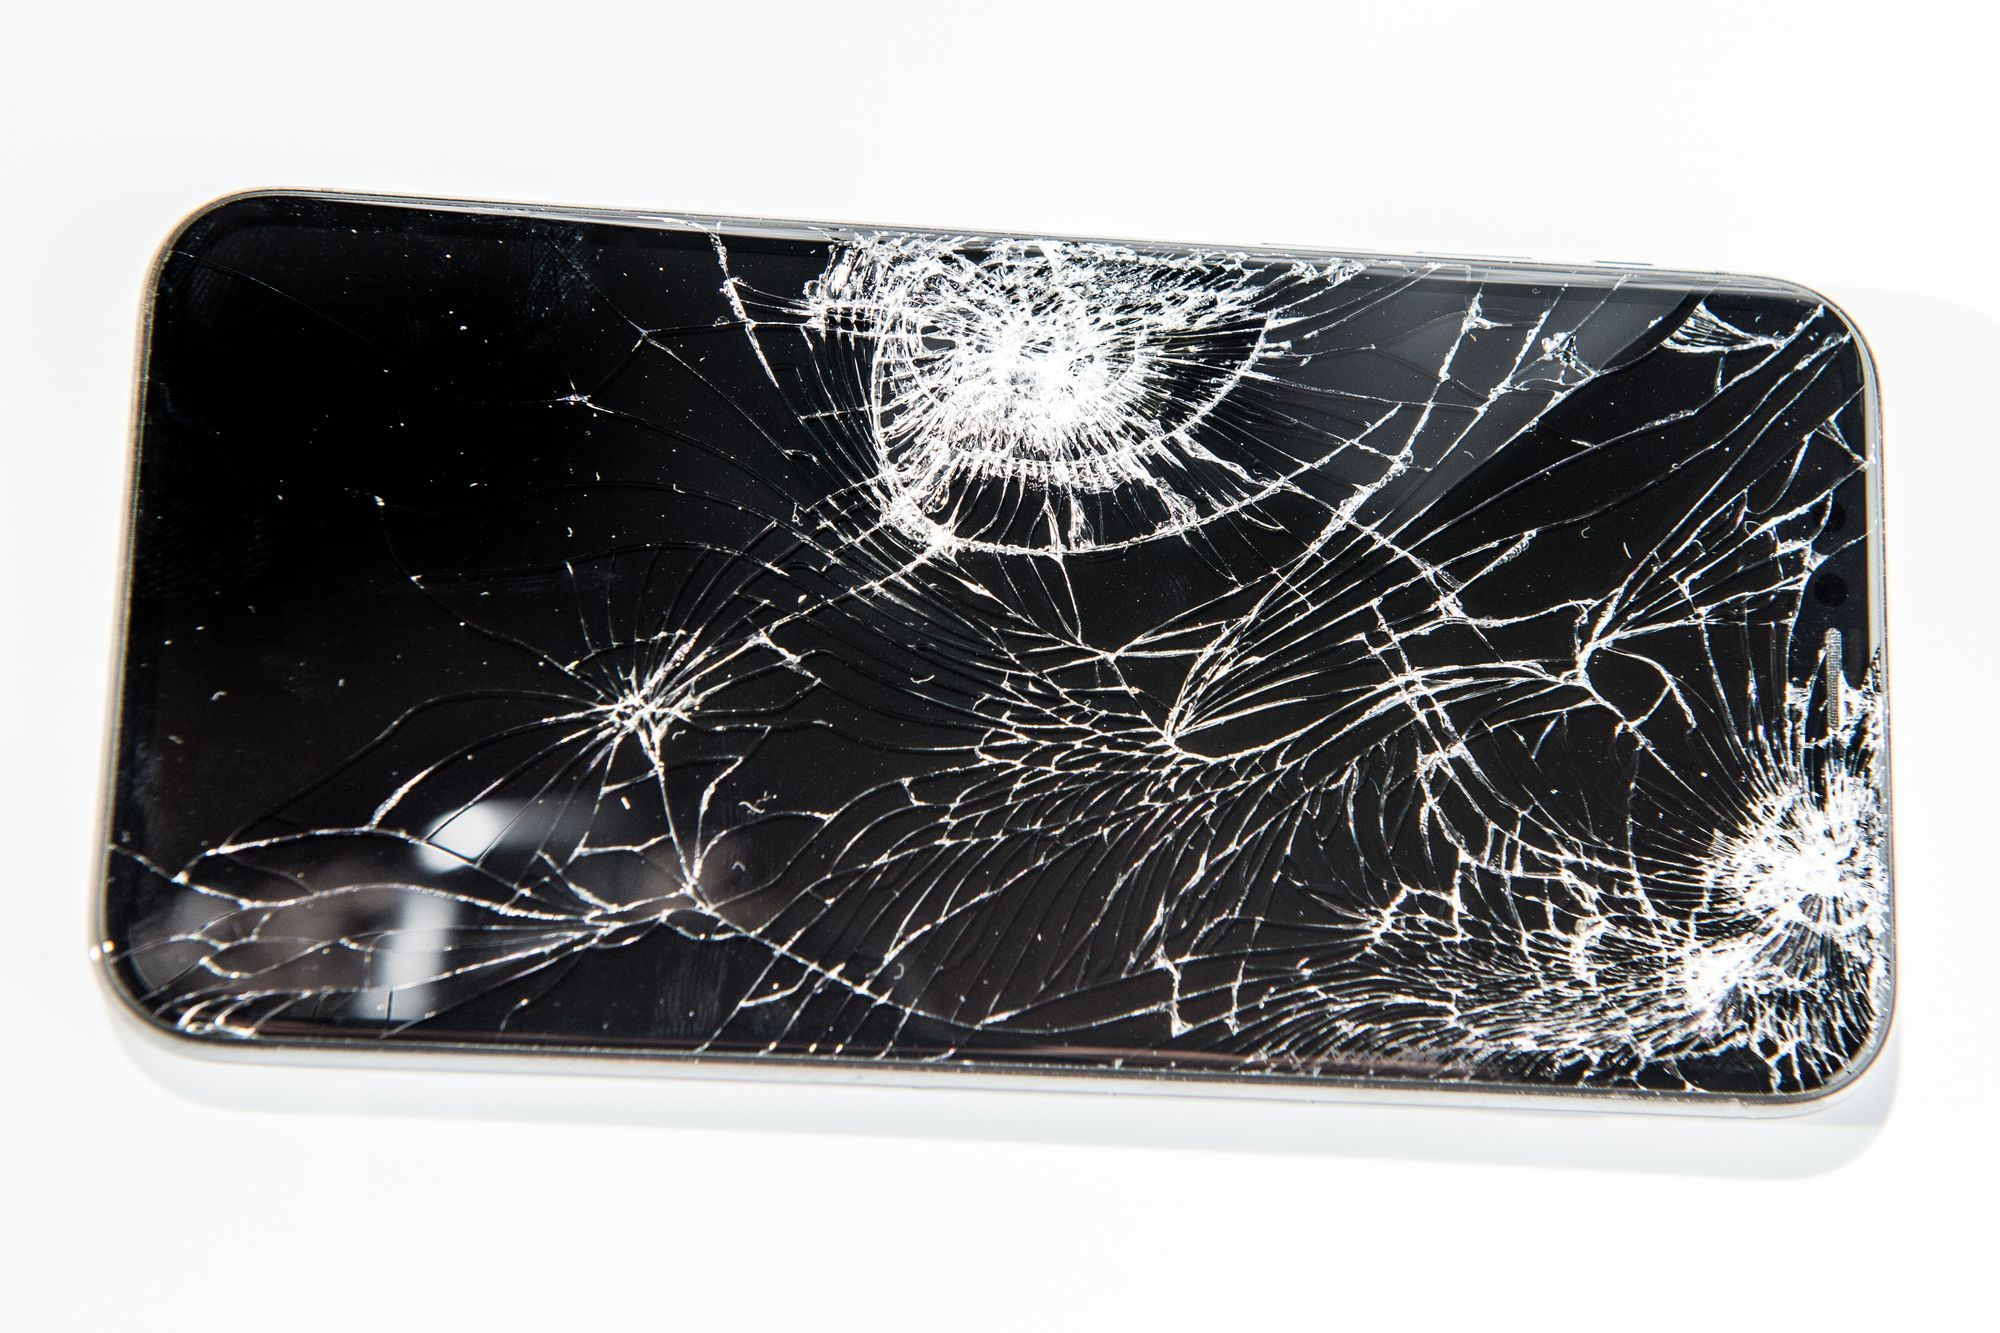 Apple says the cost of its repair services exceed what it